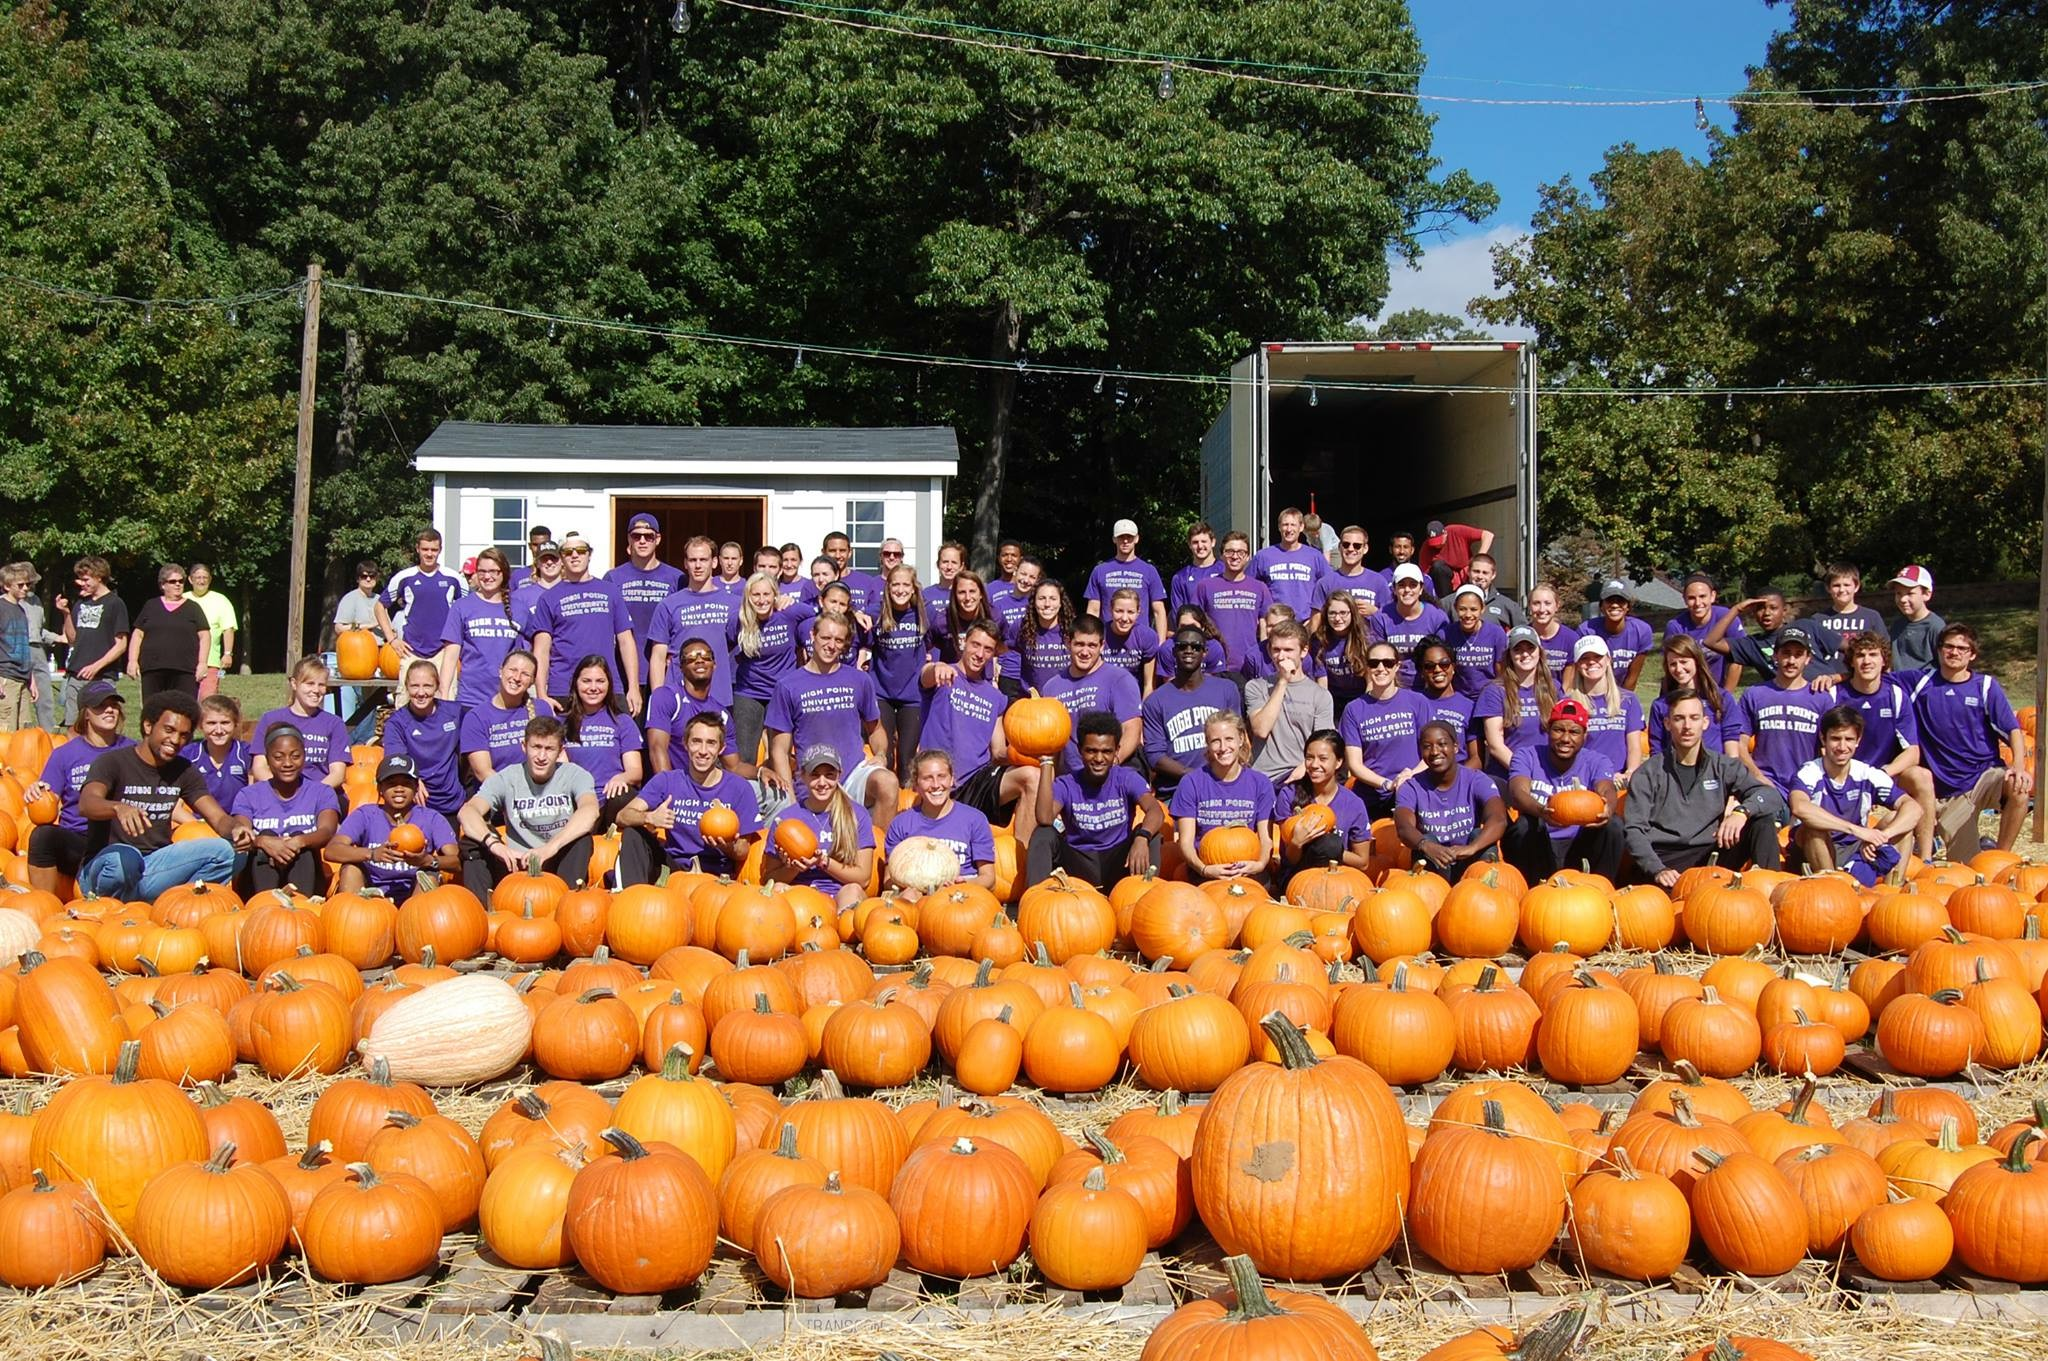 HGUMC PUMPKIN PATCH - SEPTEMBER 28 - OCTOBER 31, 2018